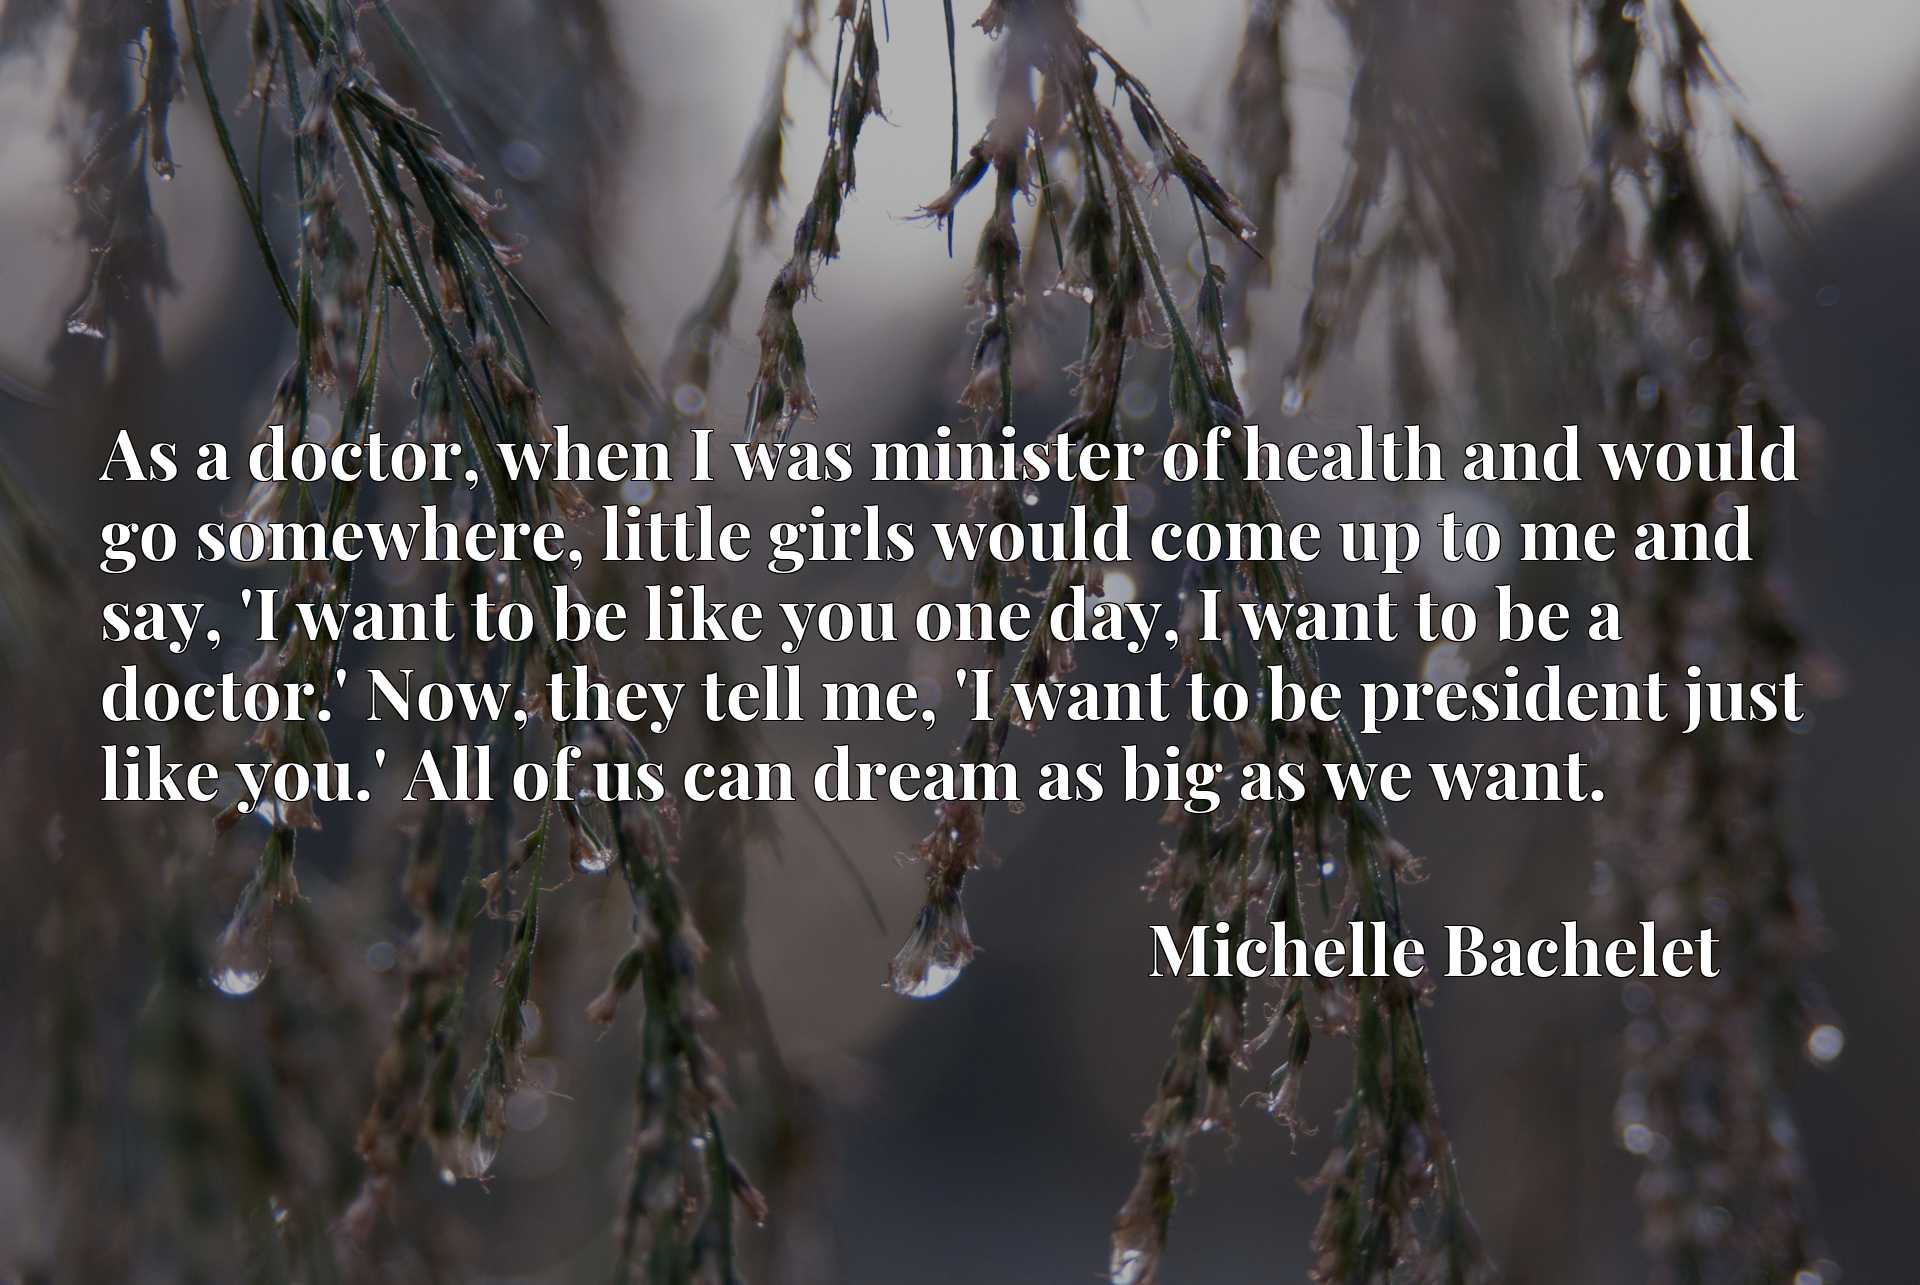 As a doctor, when I was minister of health and would go somewhere, little girls would come up to me and say, 'I want to be like you one day, I want to be a doctor.' Now, they tell me, 'I want to be president just like you.' All of us can dream as big as we want.